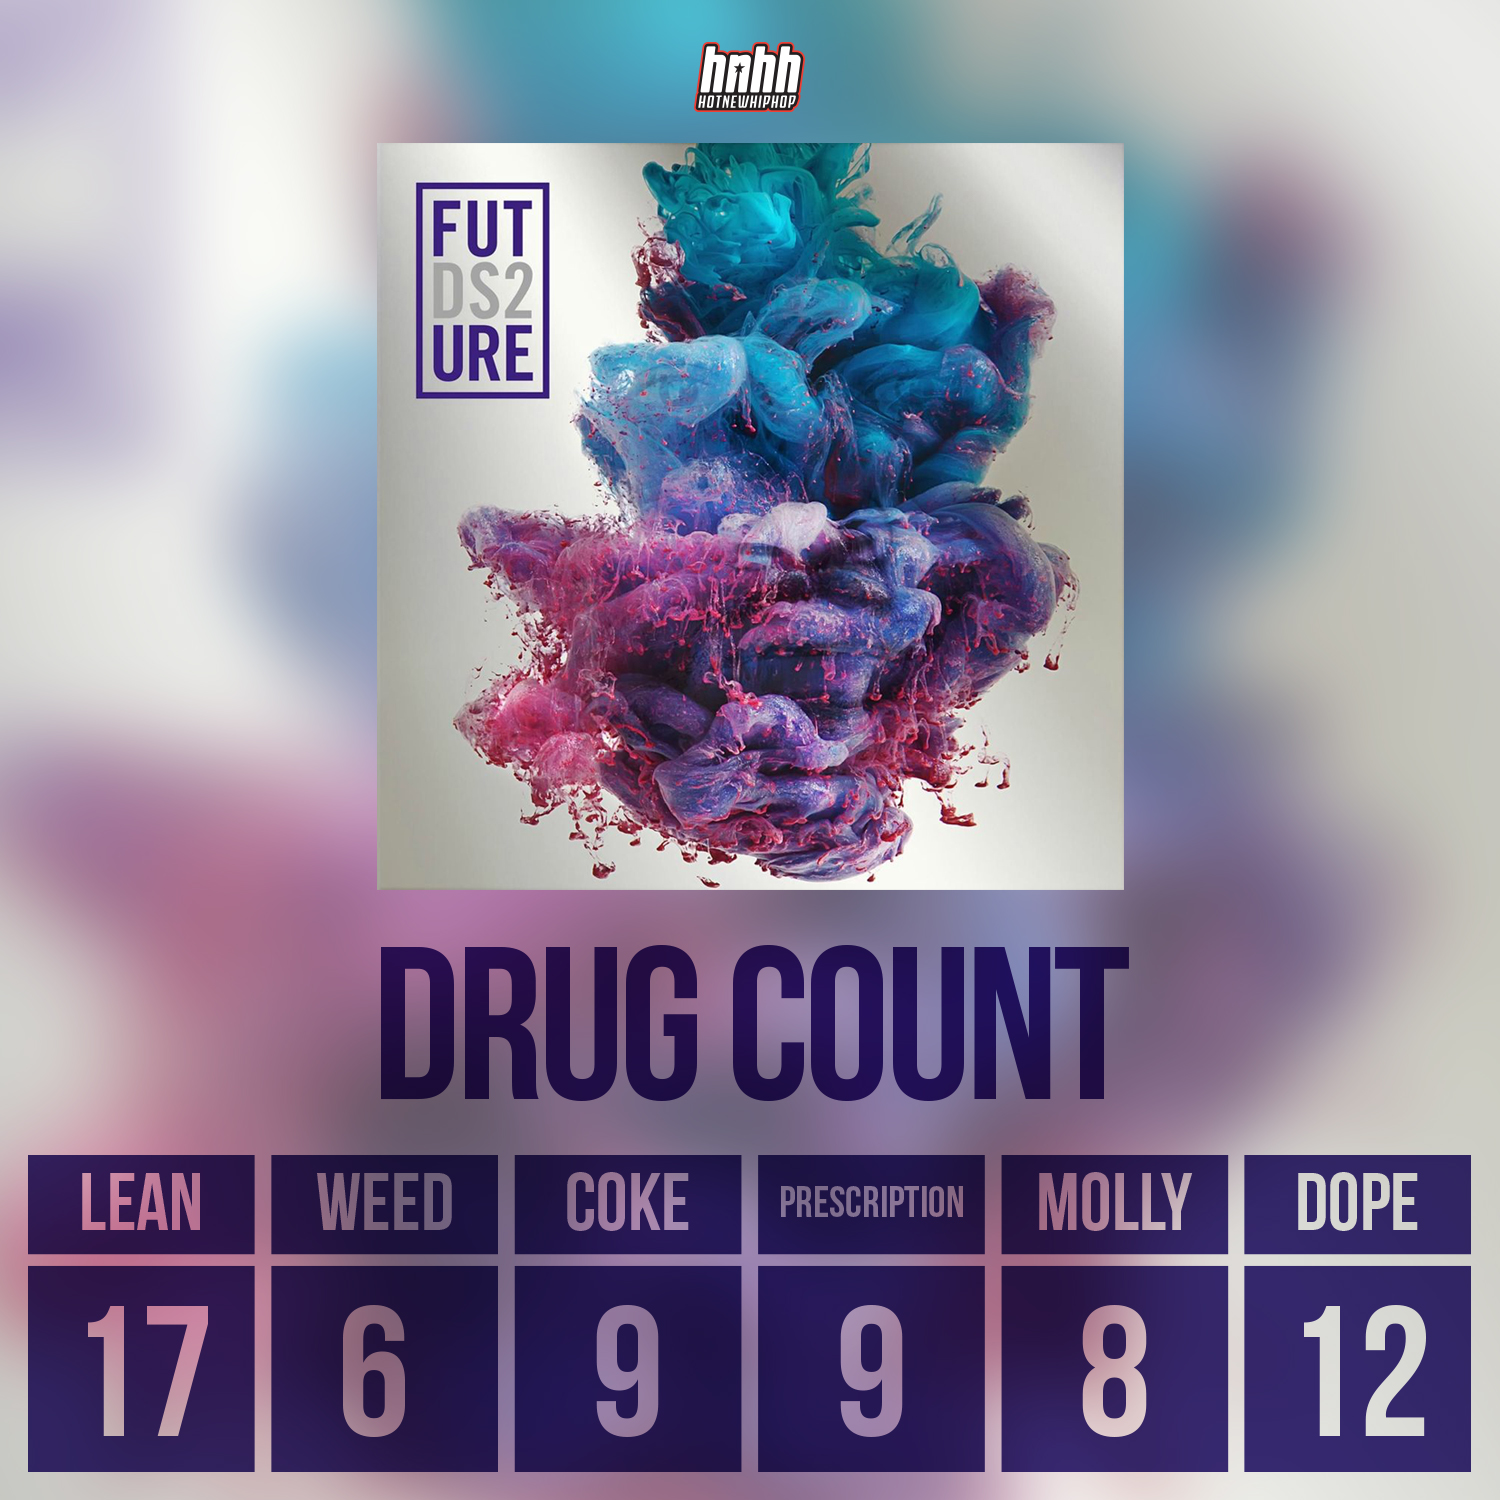 We Tally Up The Drug Referencing Lyrics On Futures New Album